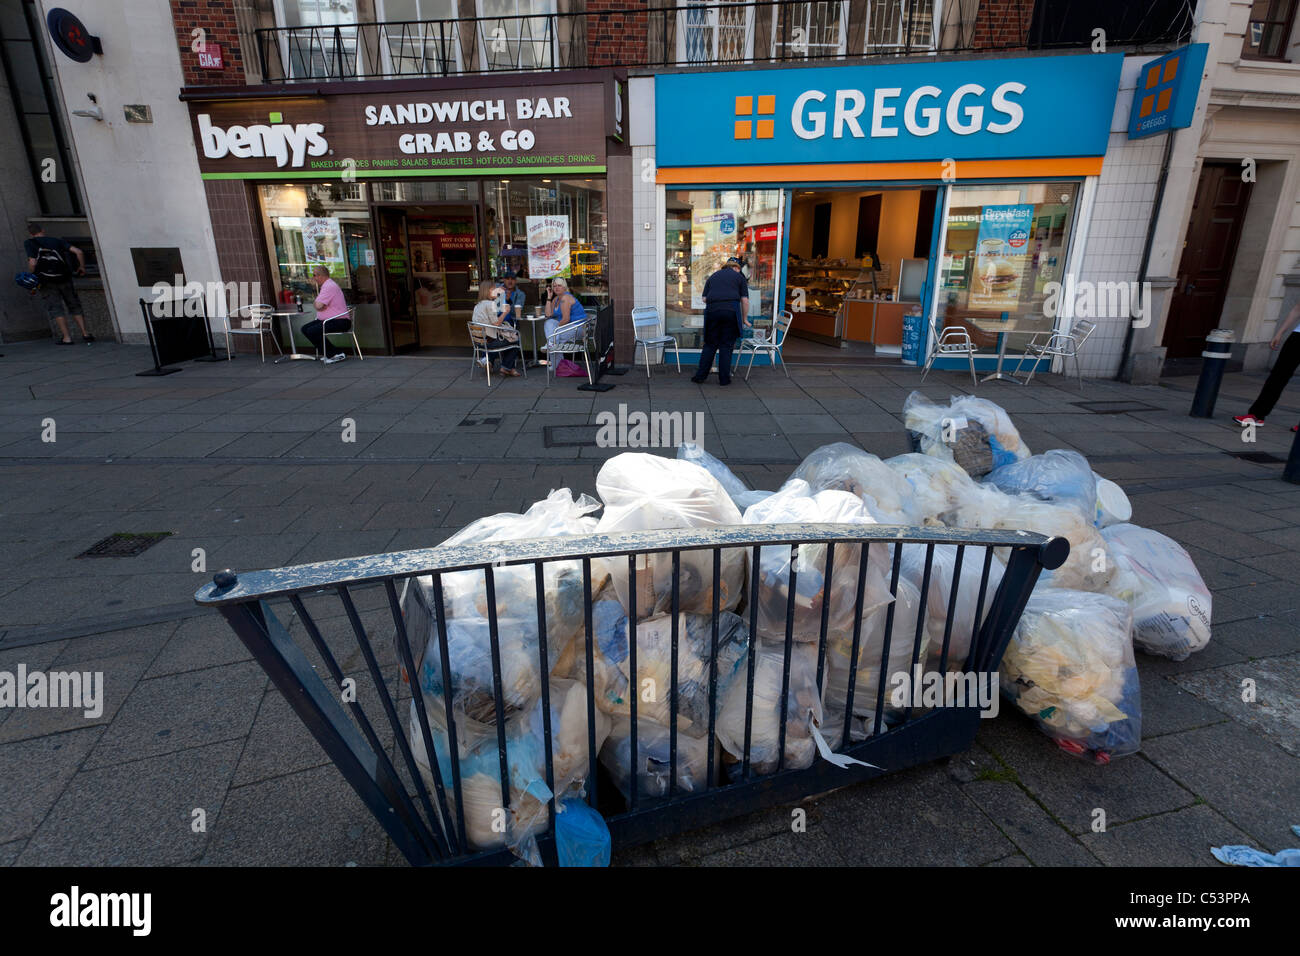 rubbish bags piles up outside fast food shops - Greggs and Benjys - Stock Image